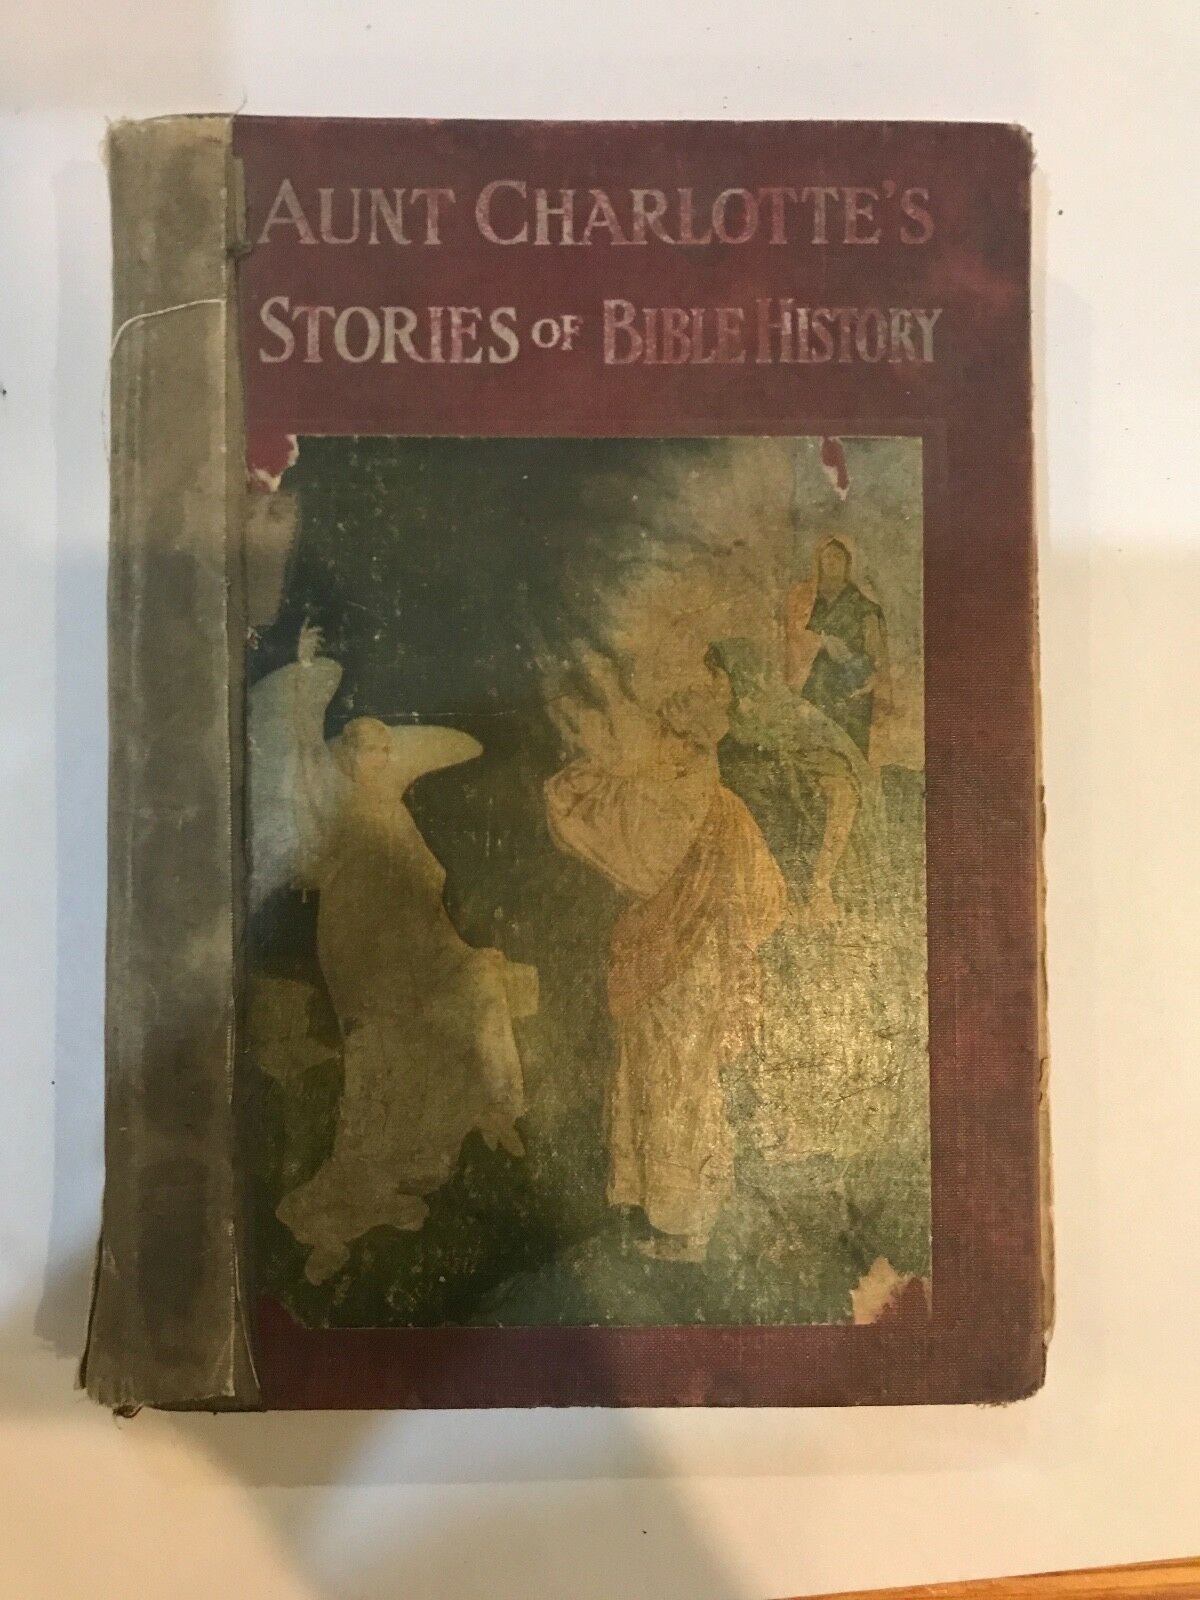 1909 AUNT CHARLOTTE'S STORIES OF BIBLE HISTORY FOR YOUNG DISCIPLES